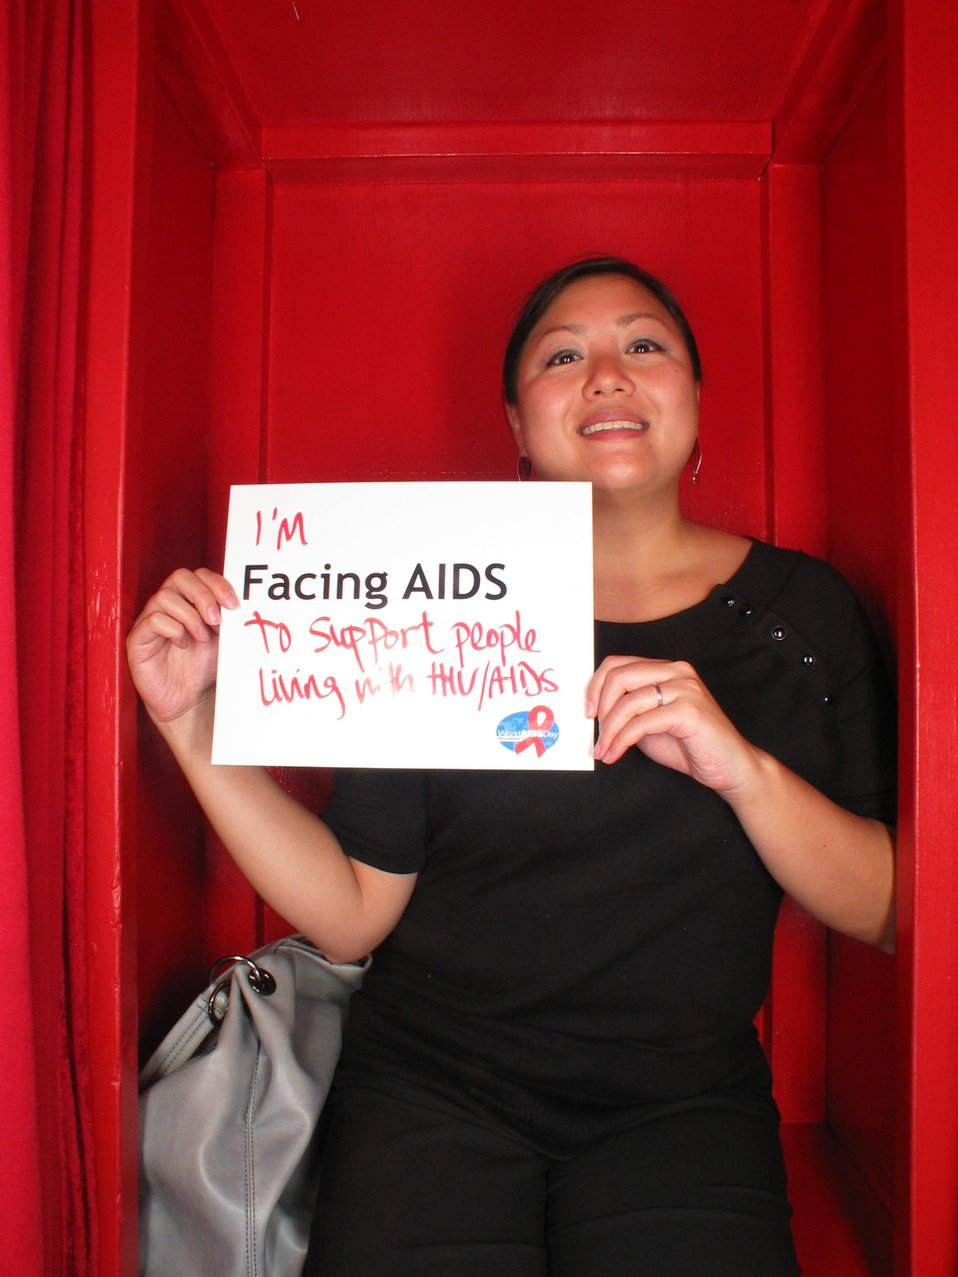 I'm Facing AIDS to support people living with HIV/AIDS.